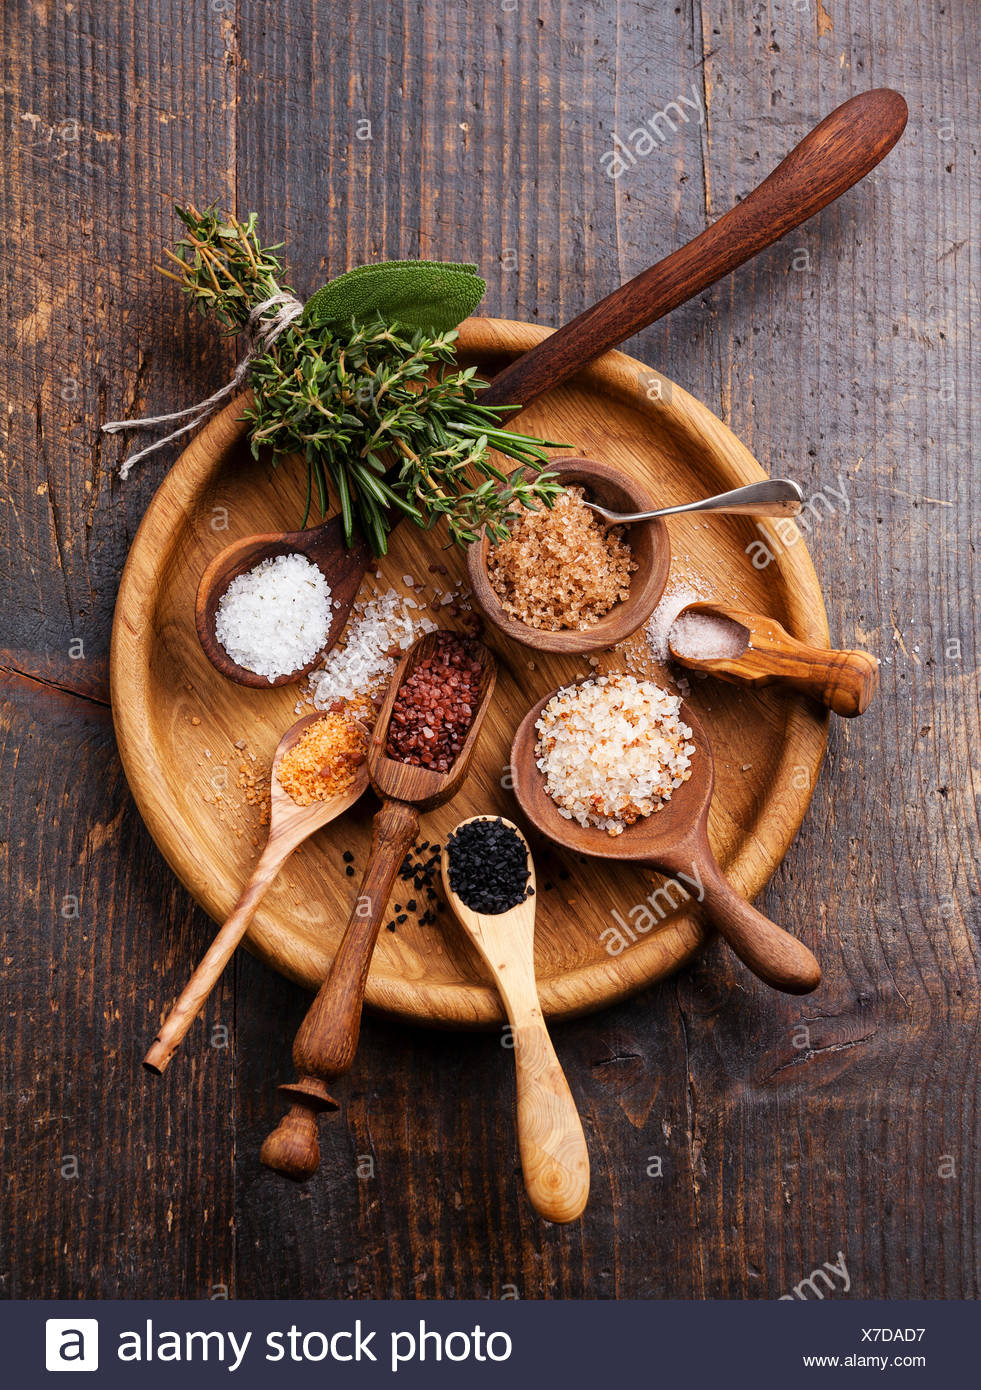 Different types of food coarse Salt in wooden spoons on dark background - Stock Image